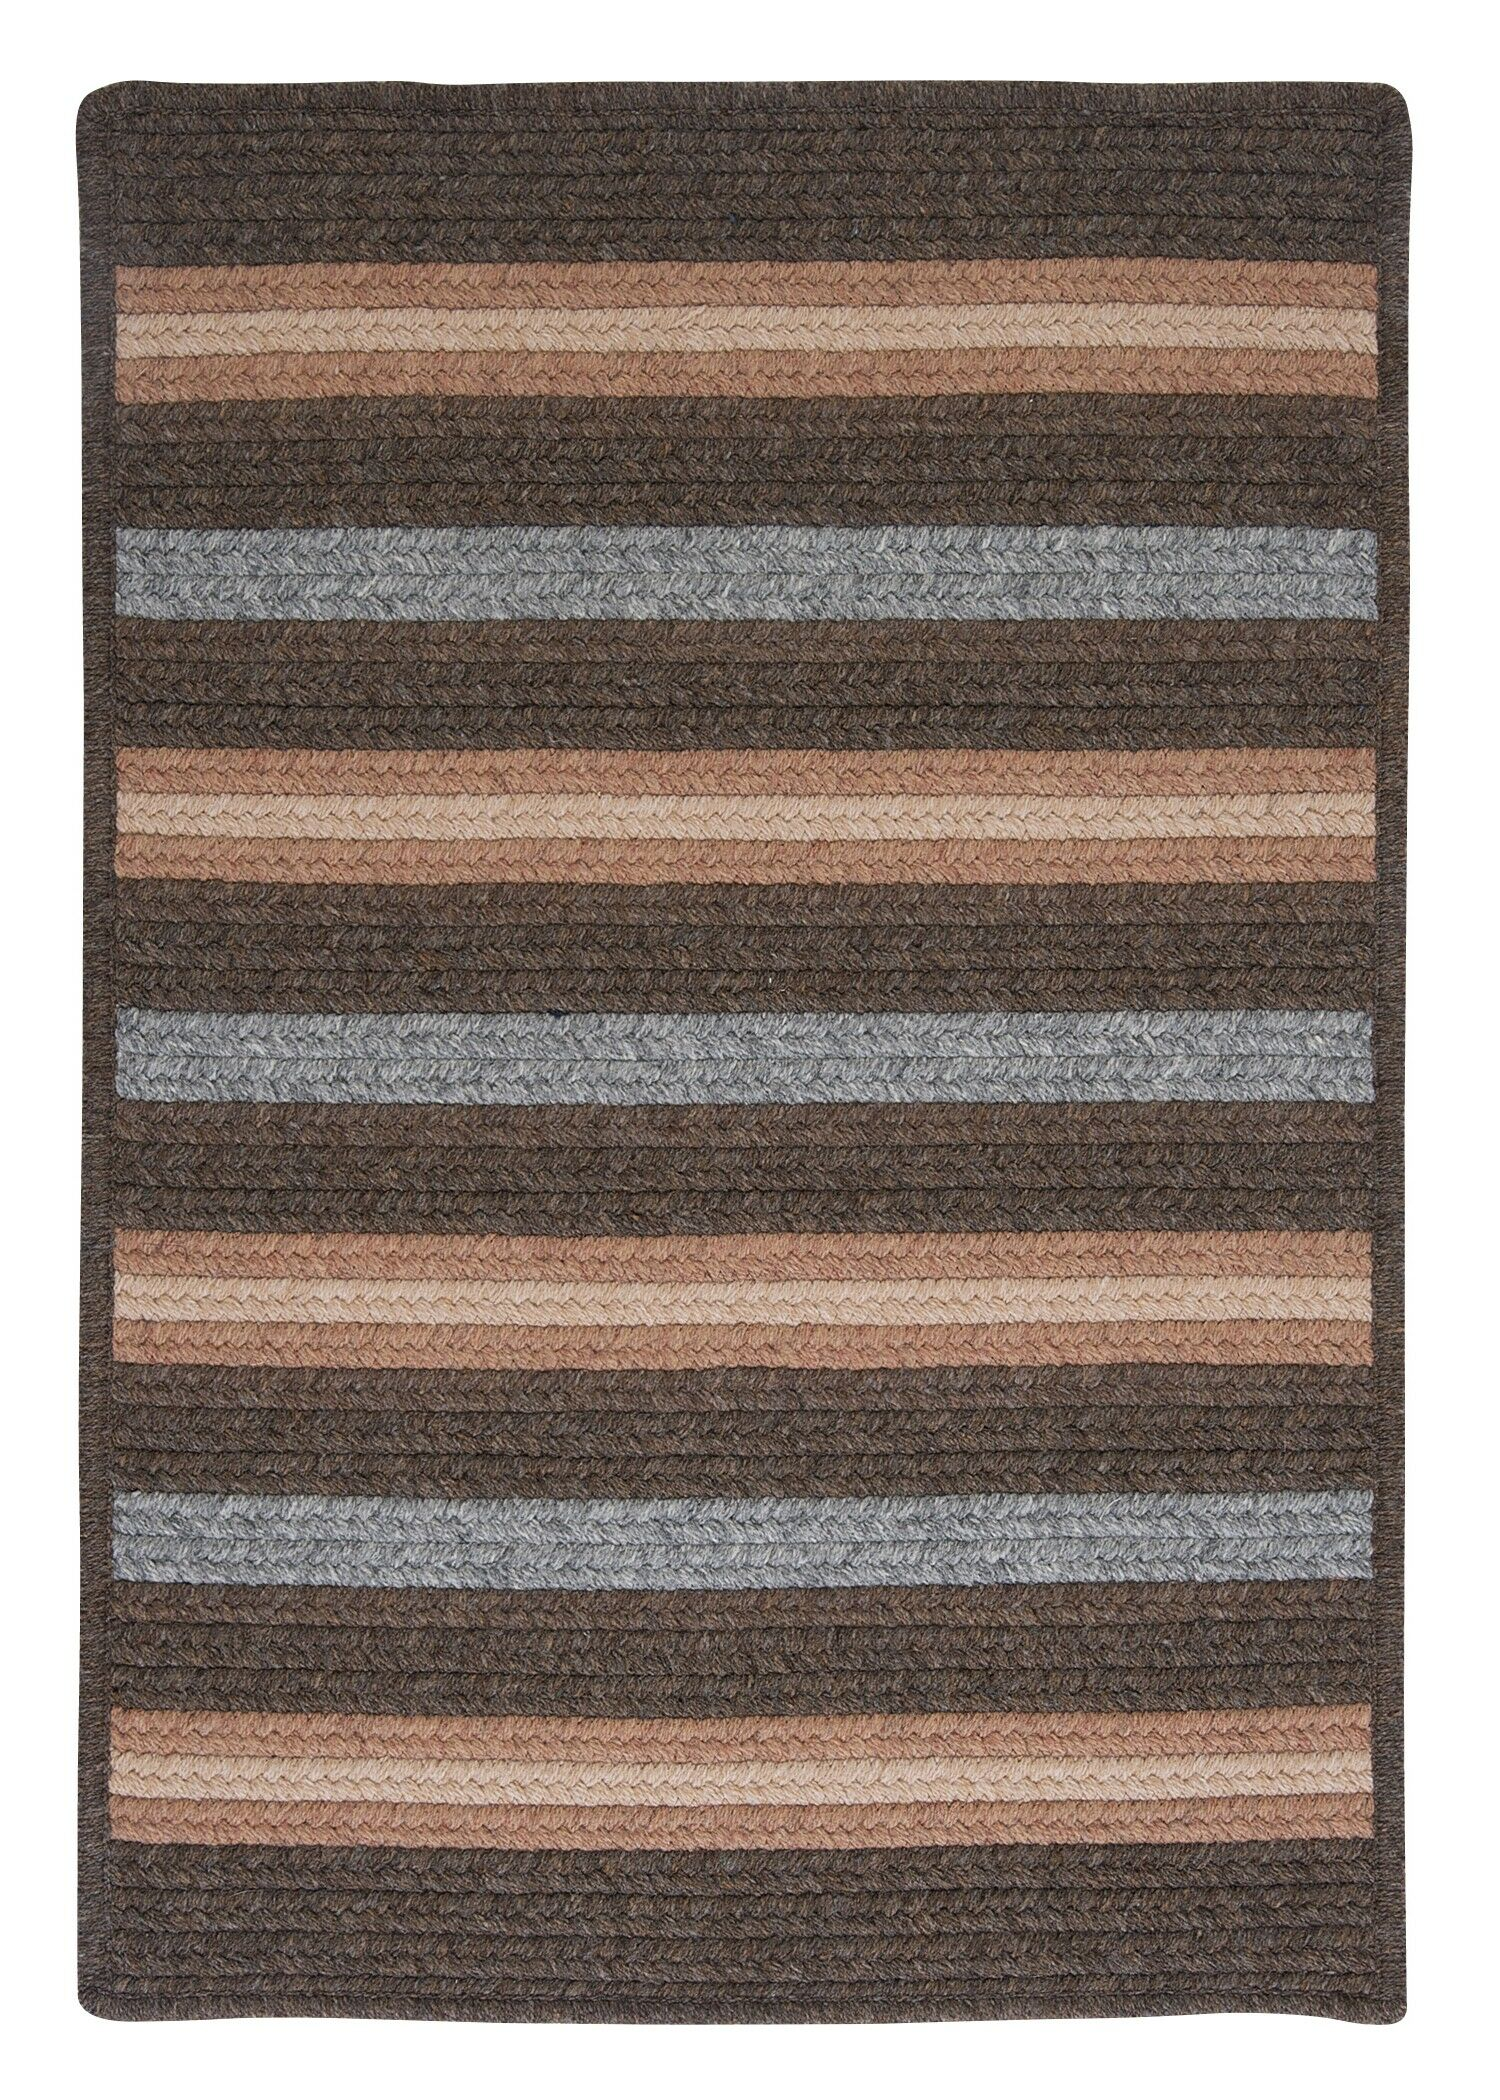 Salisbury Brown Striped Area Rug Rug Size: Square 8'